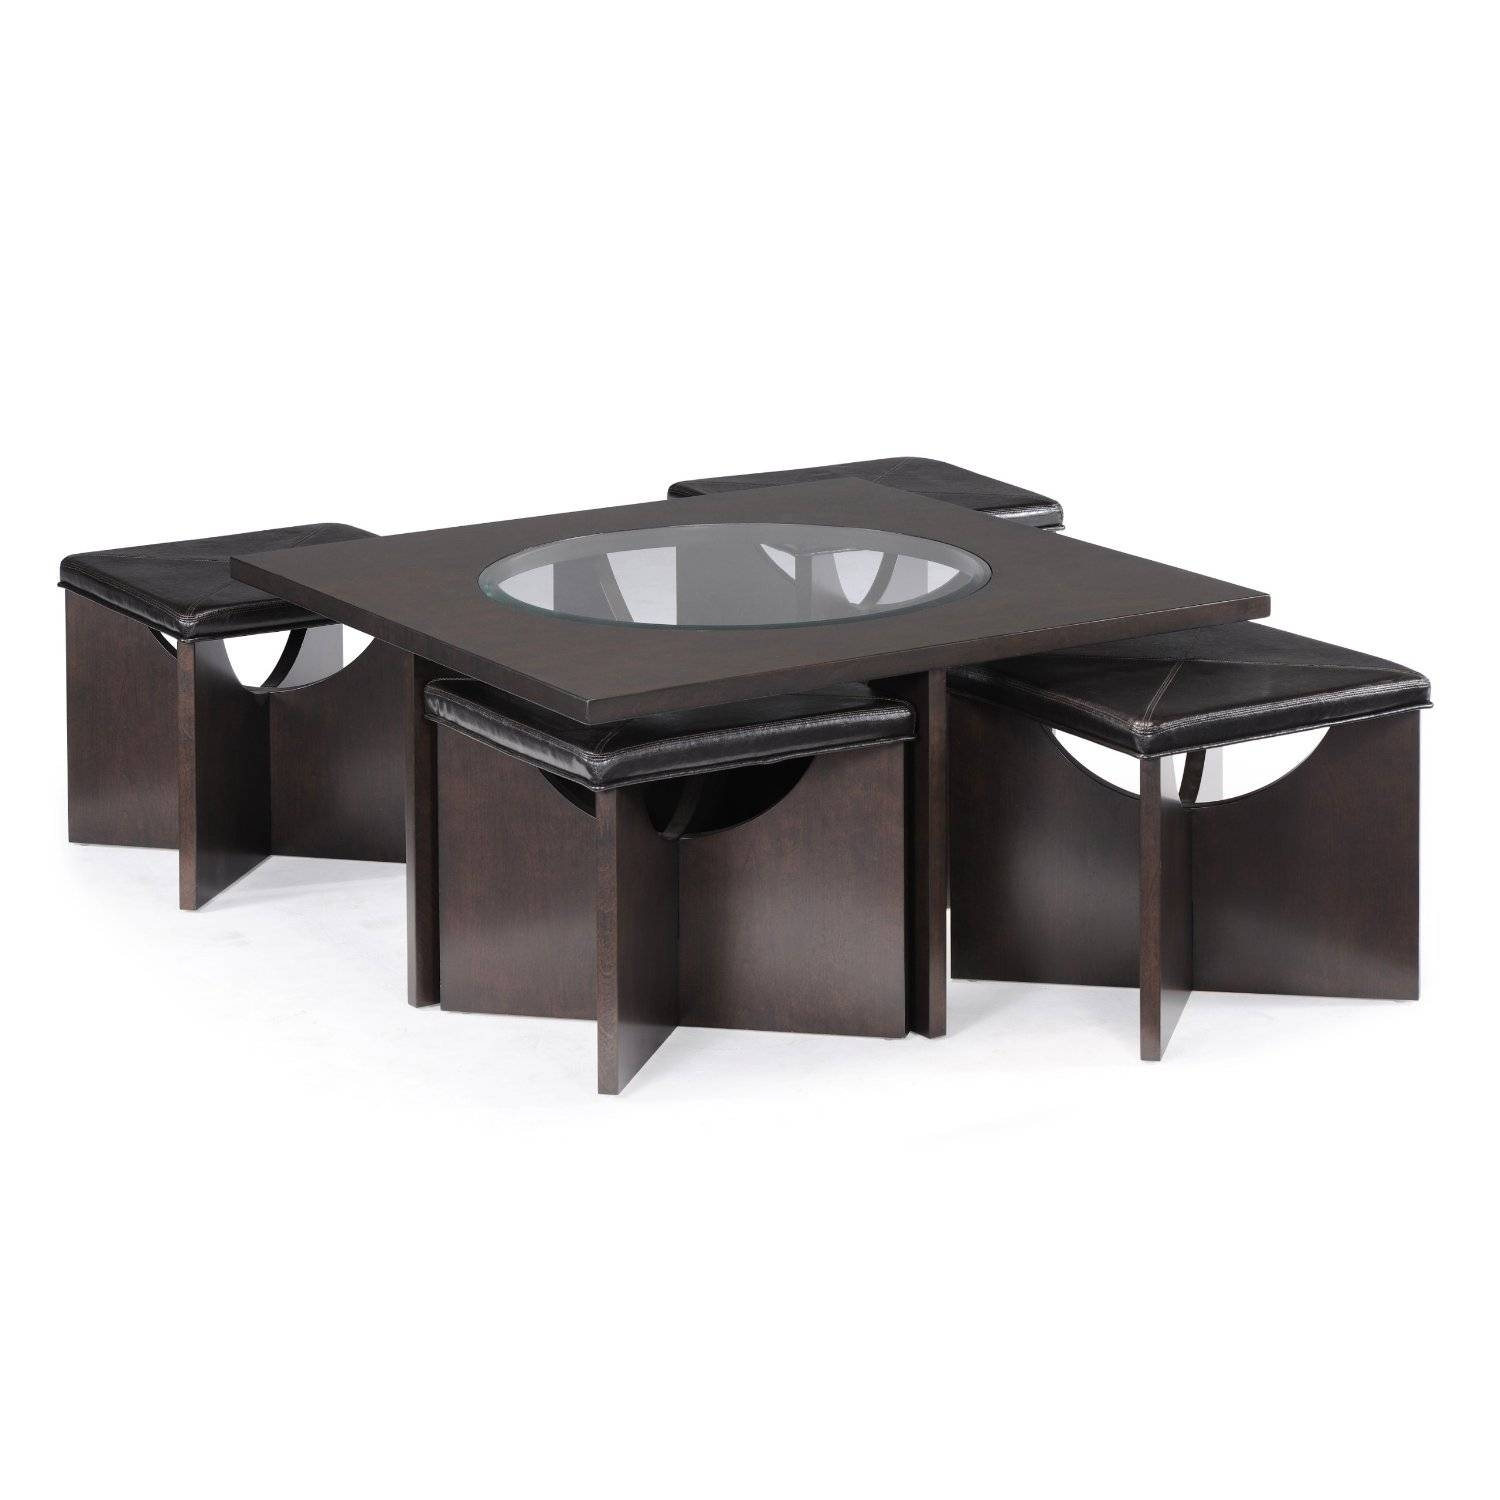 Furniture: Luxury Coffee Table With Stools For Living Room inside Large Coffee Tables With Storage (Image 17 of 30)